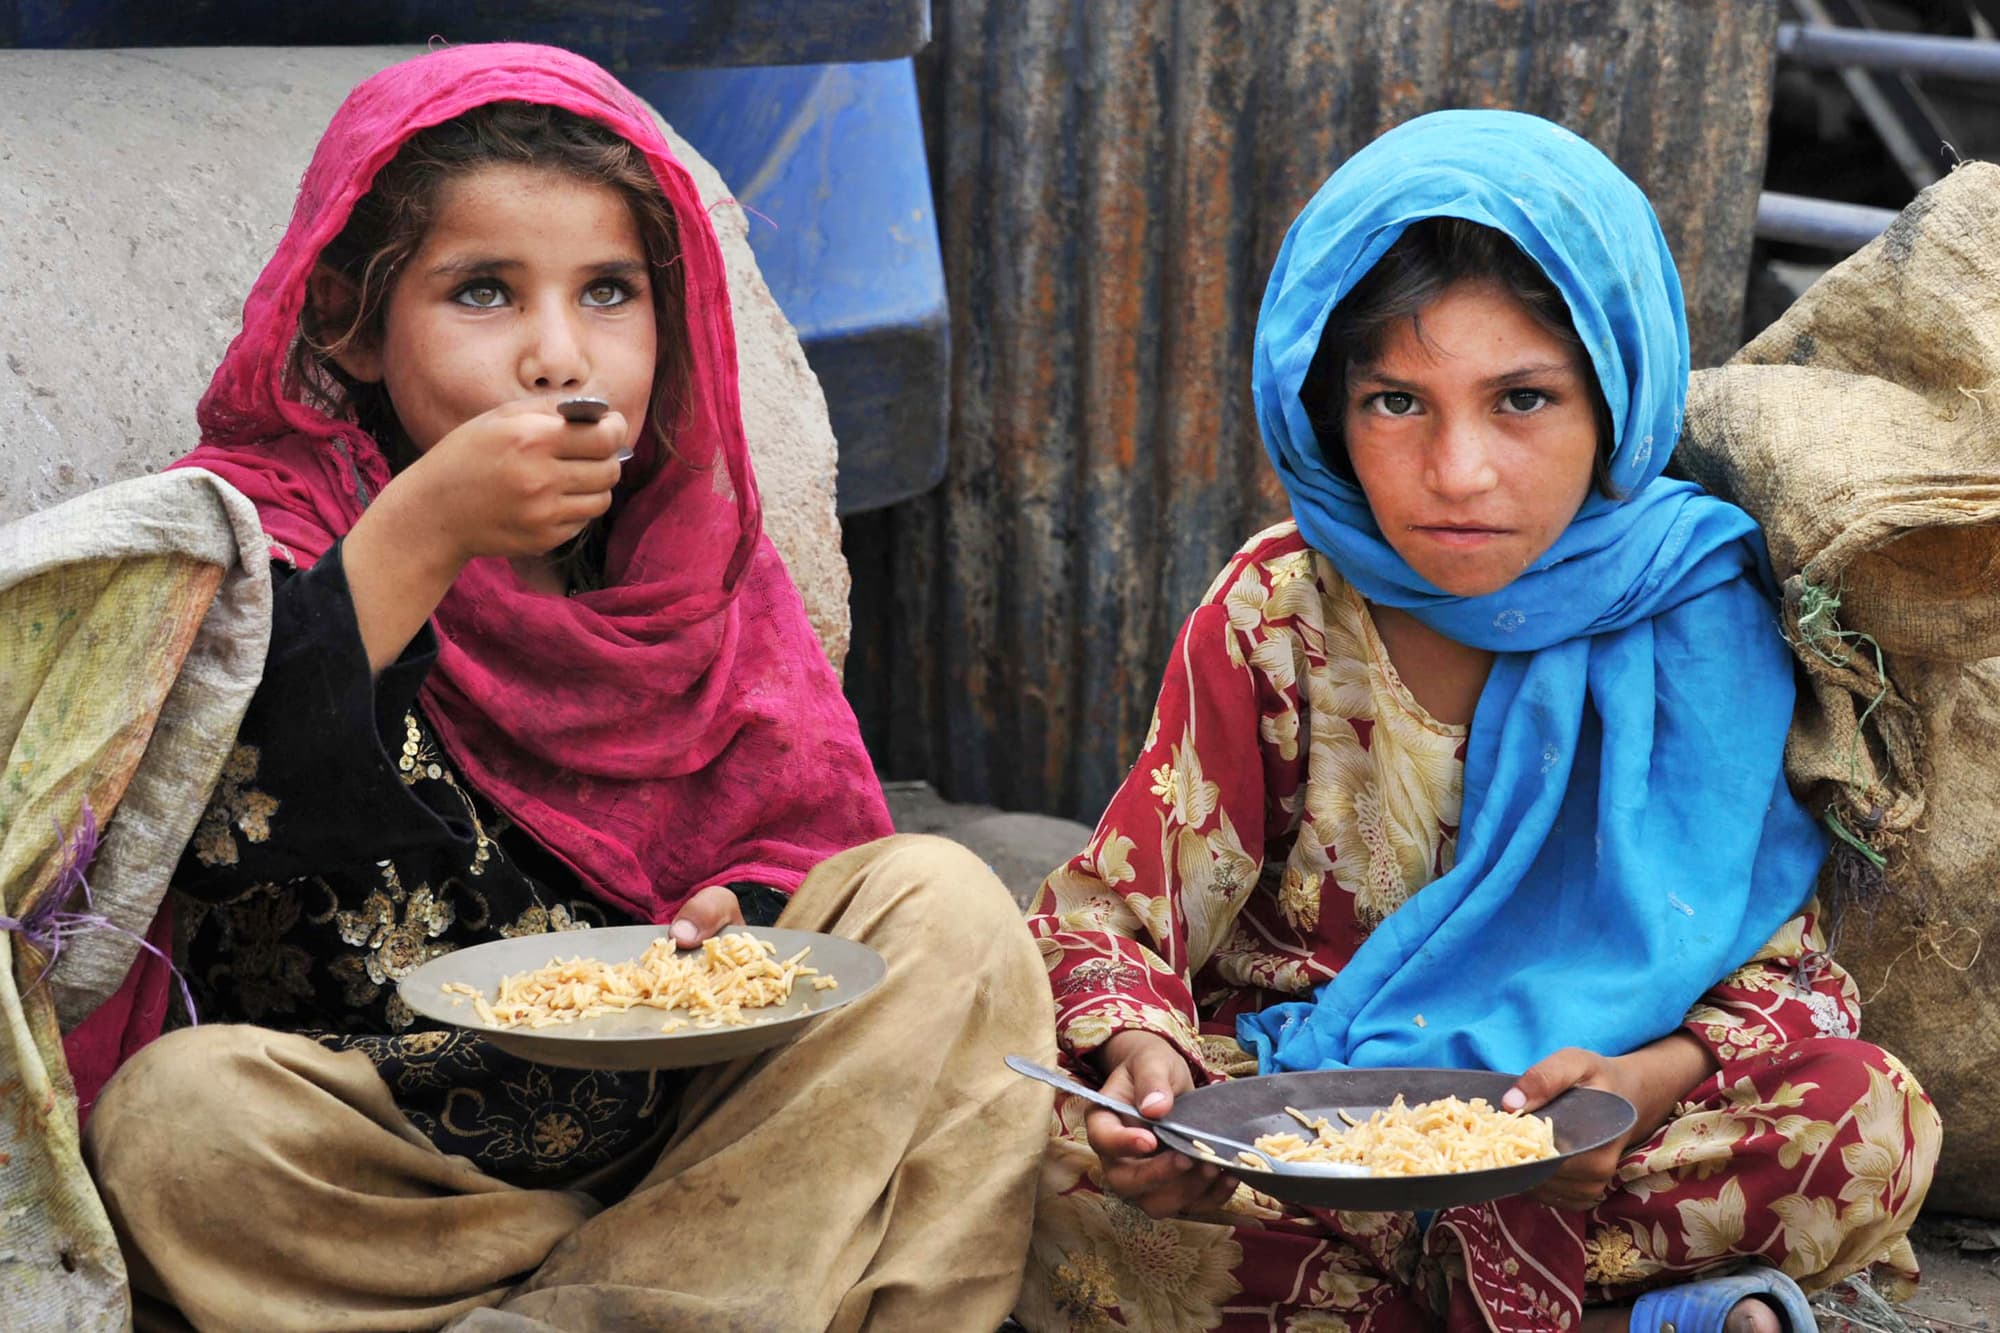 Mayor of Kabul warns, 'We have millions of people who are at the verge of famine and hunger'